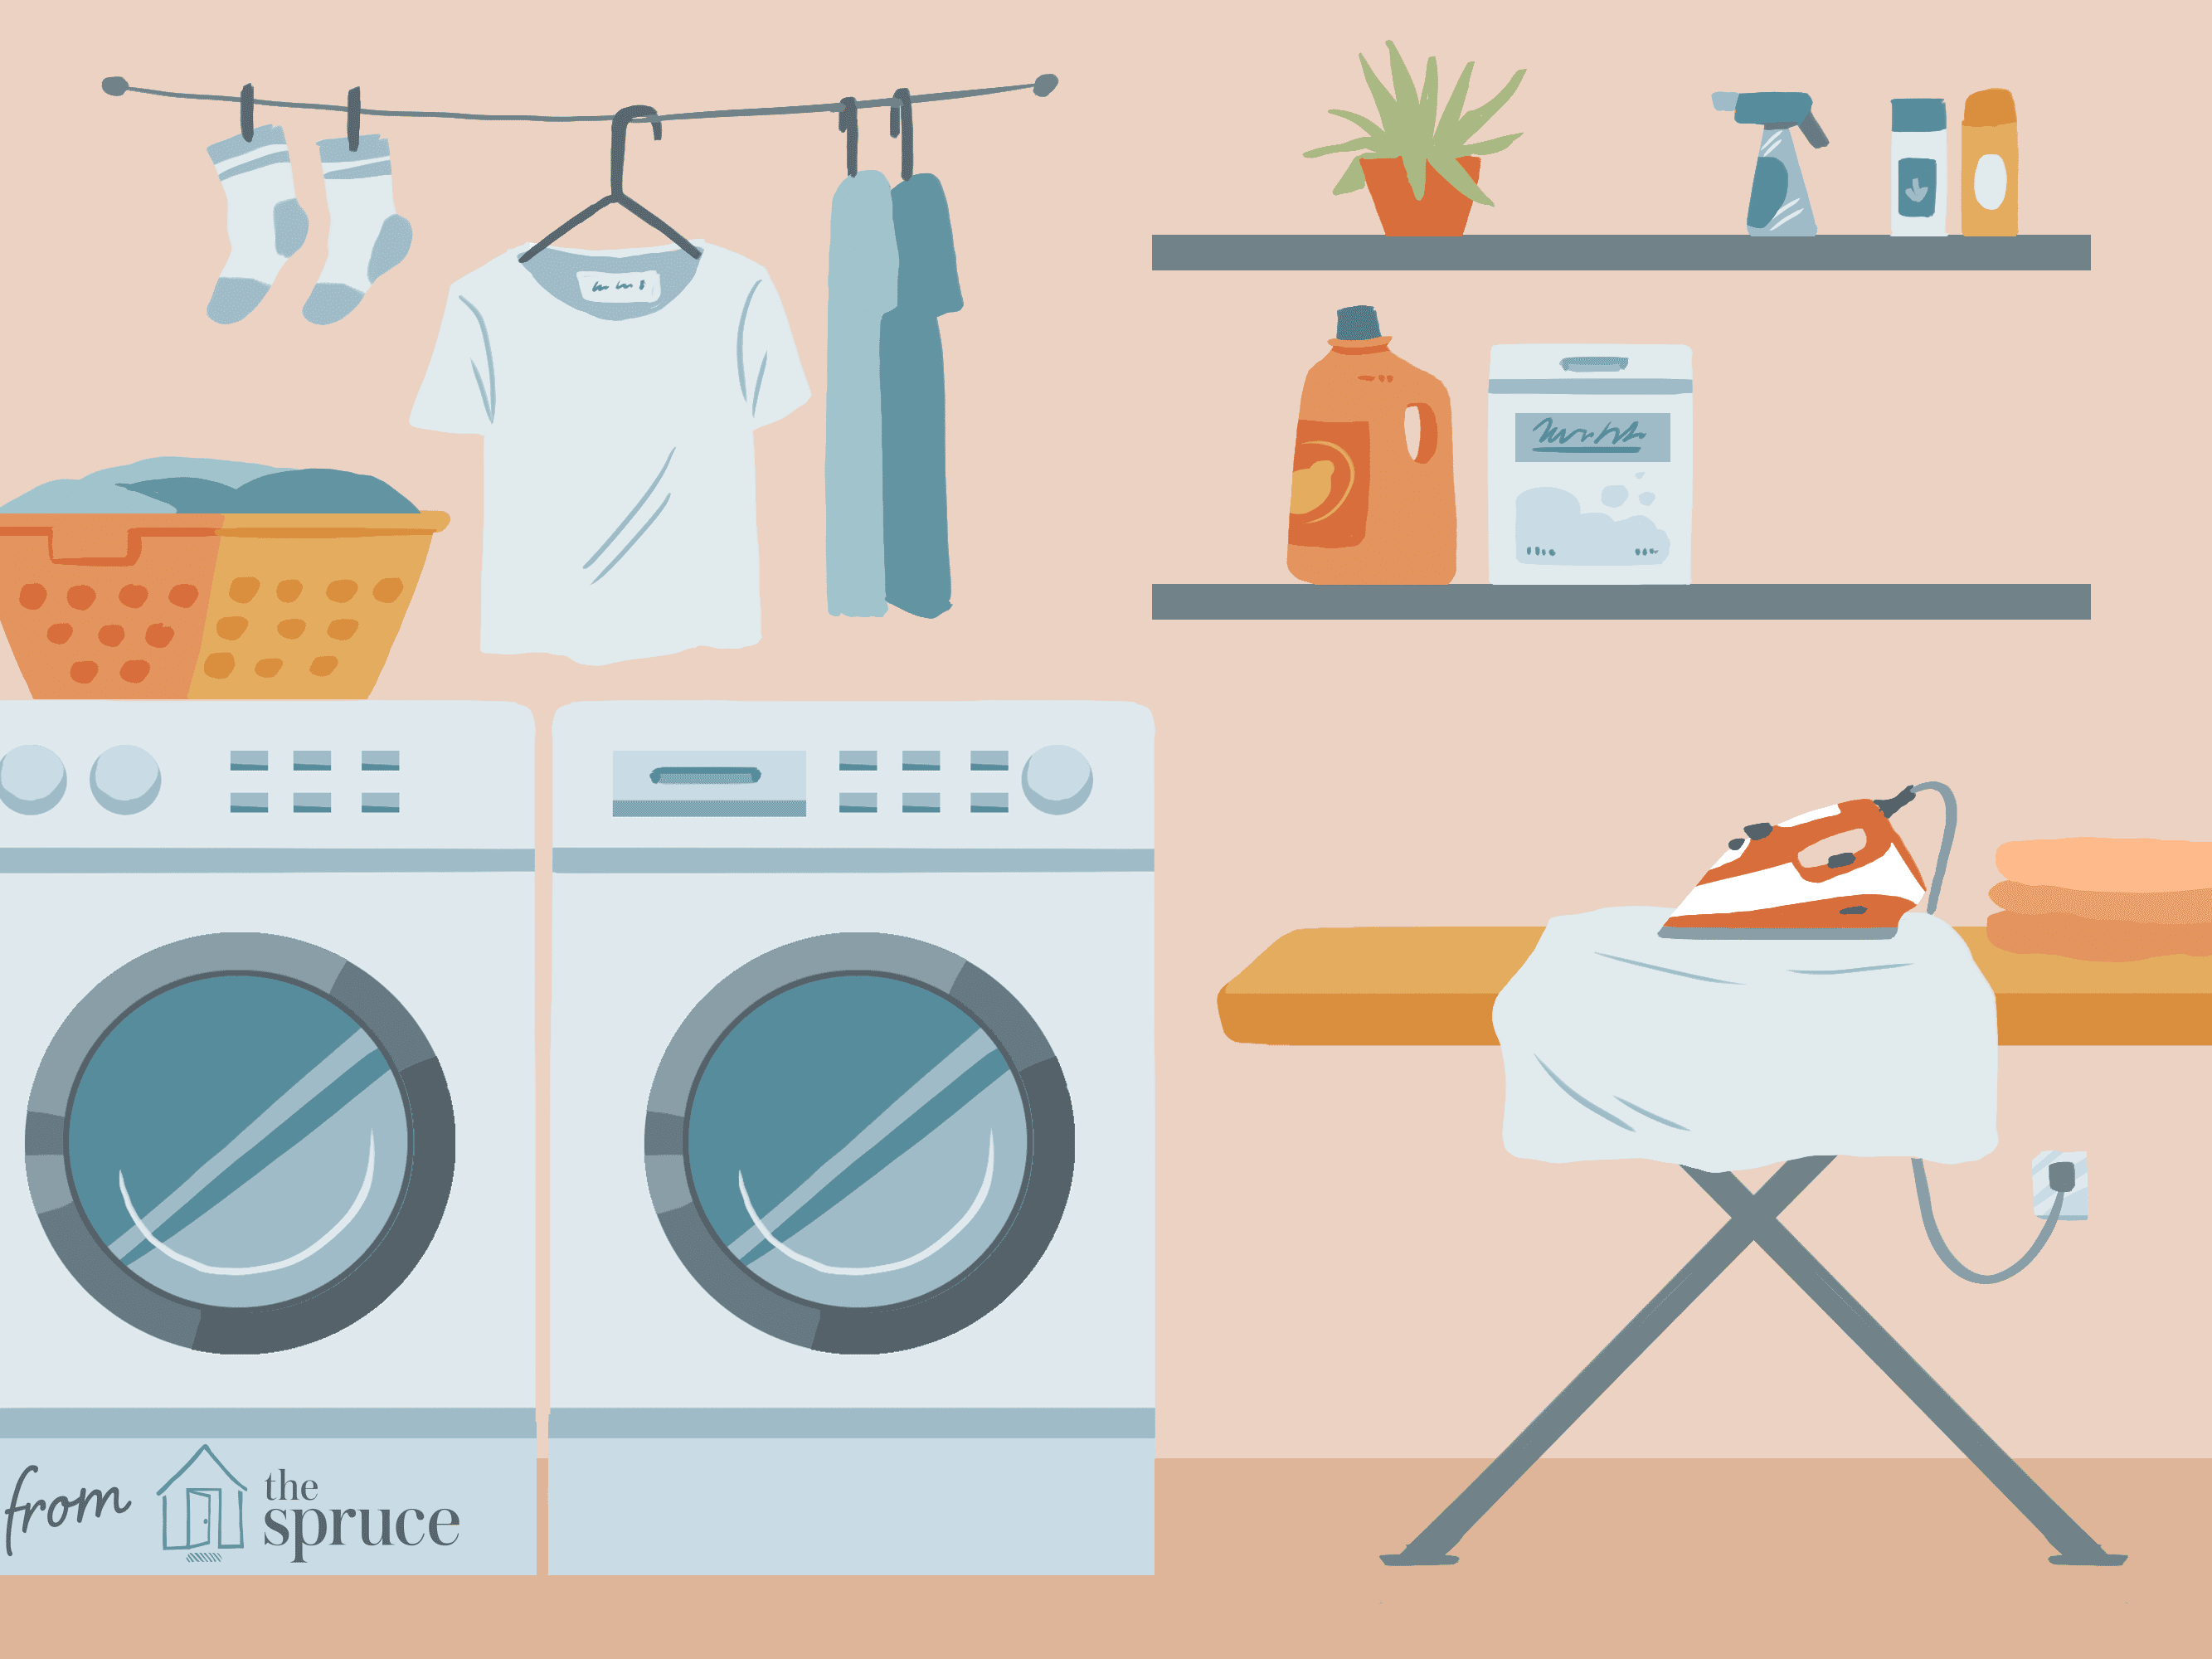 Follow These Easy Steps To Disinfect Your Clothes